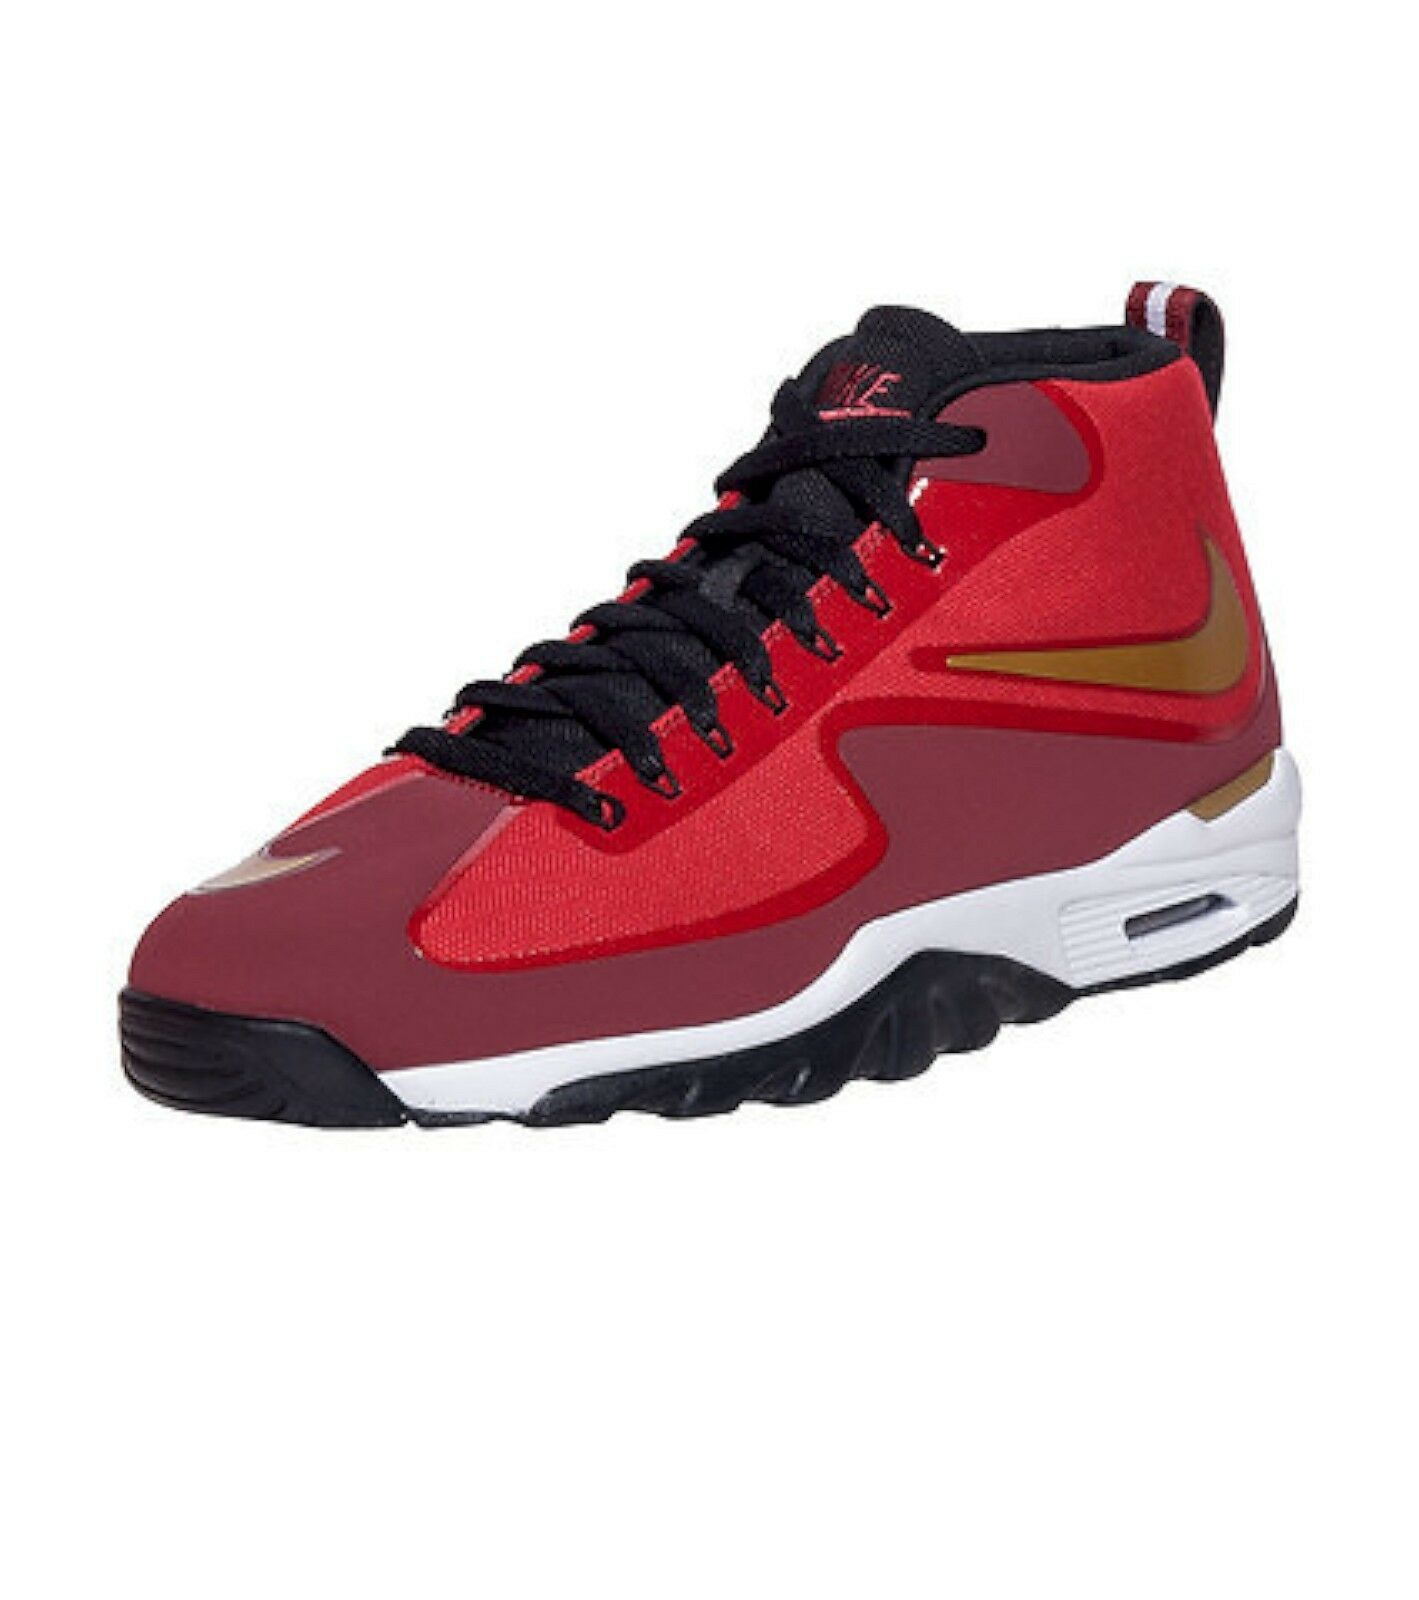 NEW GENUINE Nike Mens Size Size Size 12 AIR UNTOUCHABLE VAPOR Running shoes Red 807164-600 7848a6